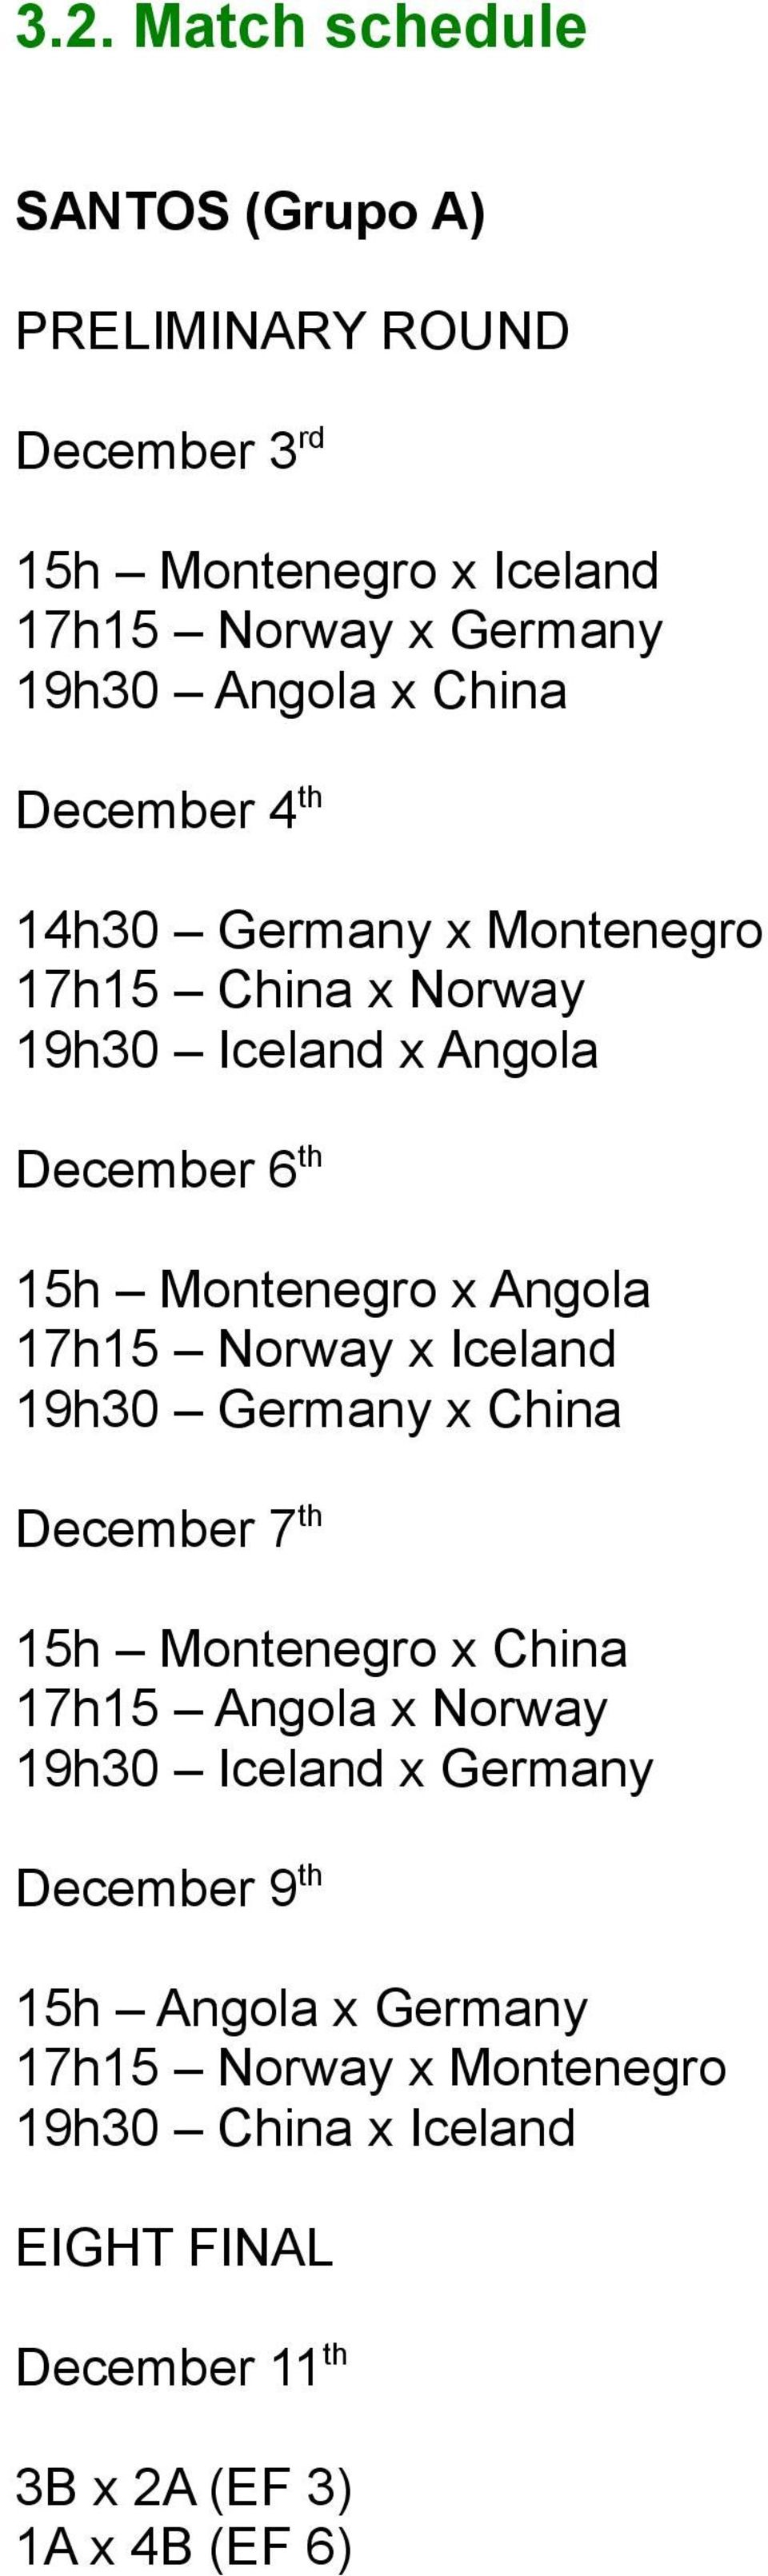 17h15 Norway x Iceland 19h30 Germany x China December 7 th 15h Montenegro x China 17h15 Angola x Norway 19h30 Iceland x Germany